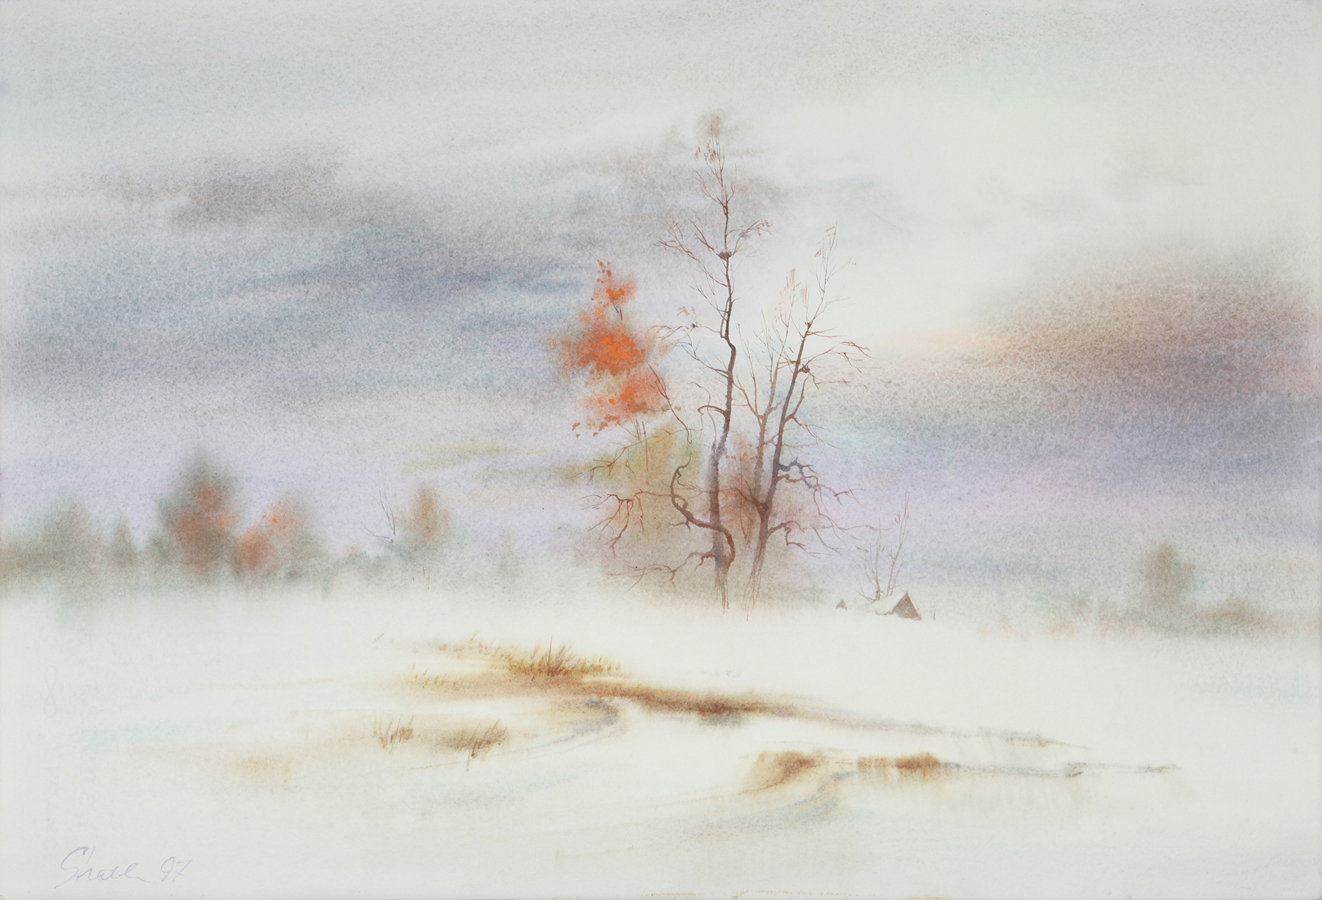 watercolor paintings wetonwet wet on wet winter landscape fine art aquarelle artist Shalum Shalumov Шалум Шалуиов архитектор художник